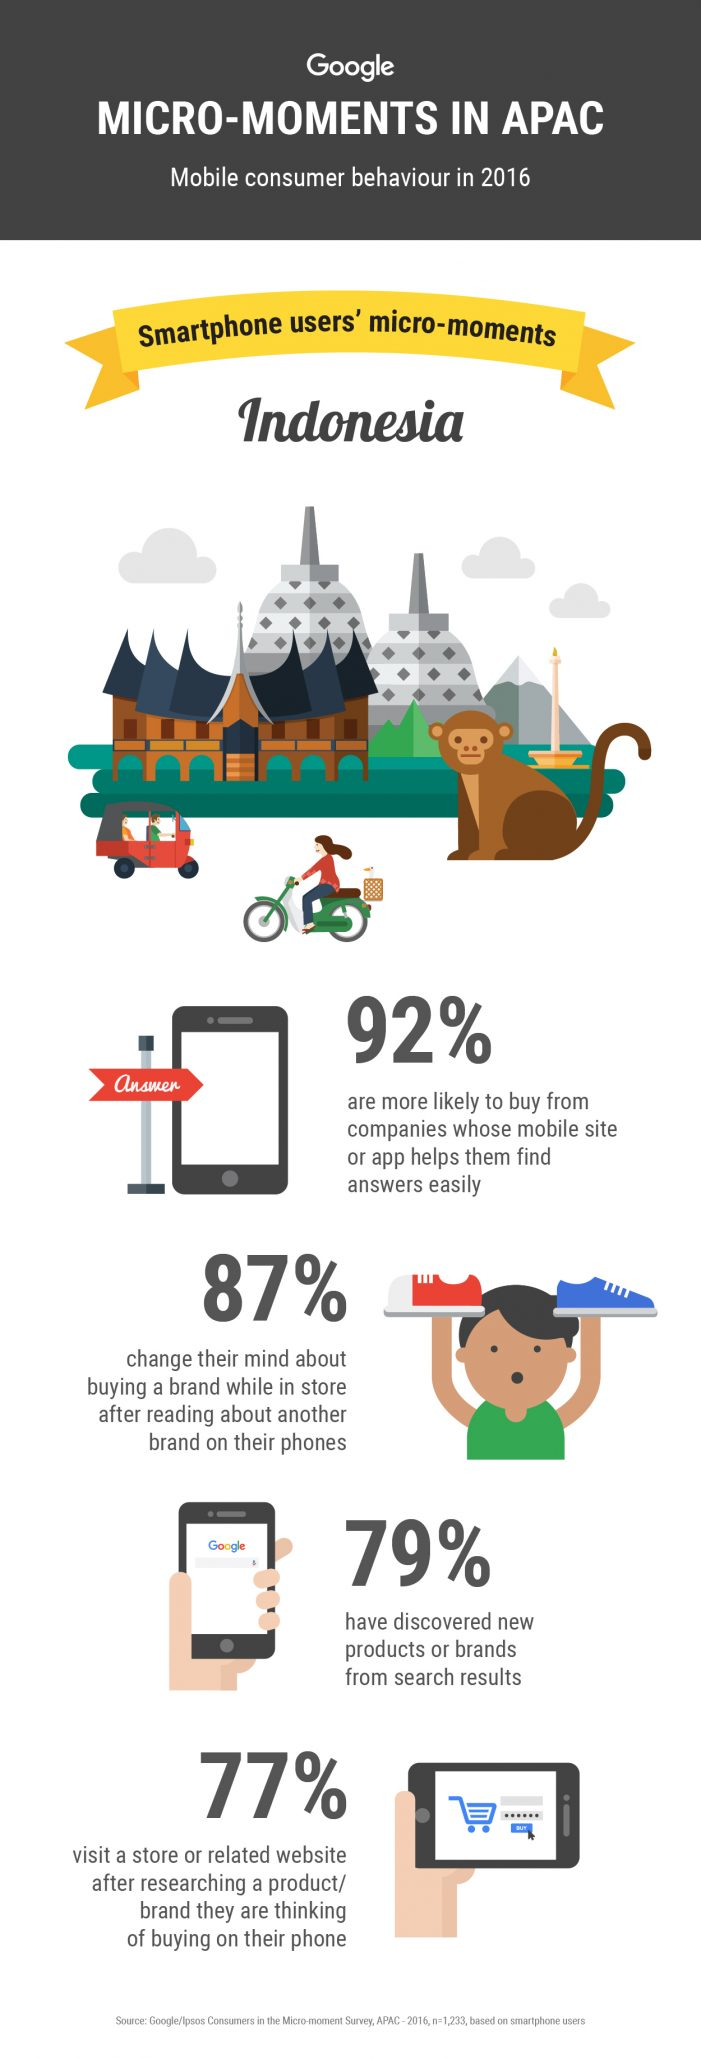 Smartphone user's micro moments: Mobile Consumer Behaviour in Indonesia